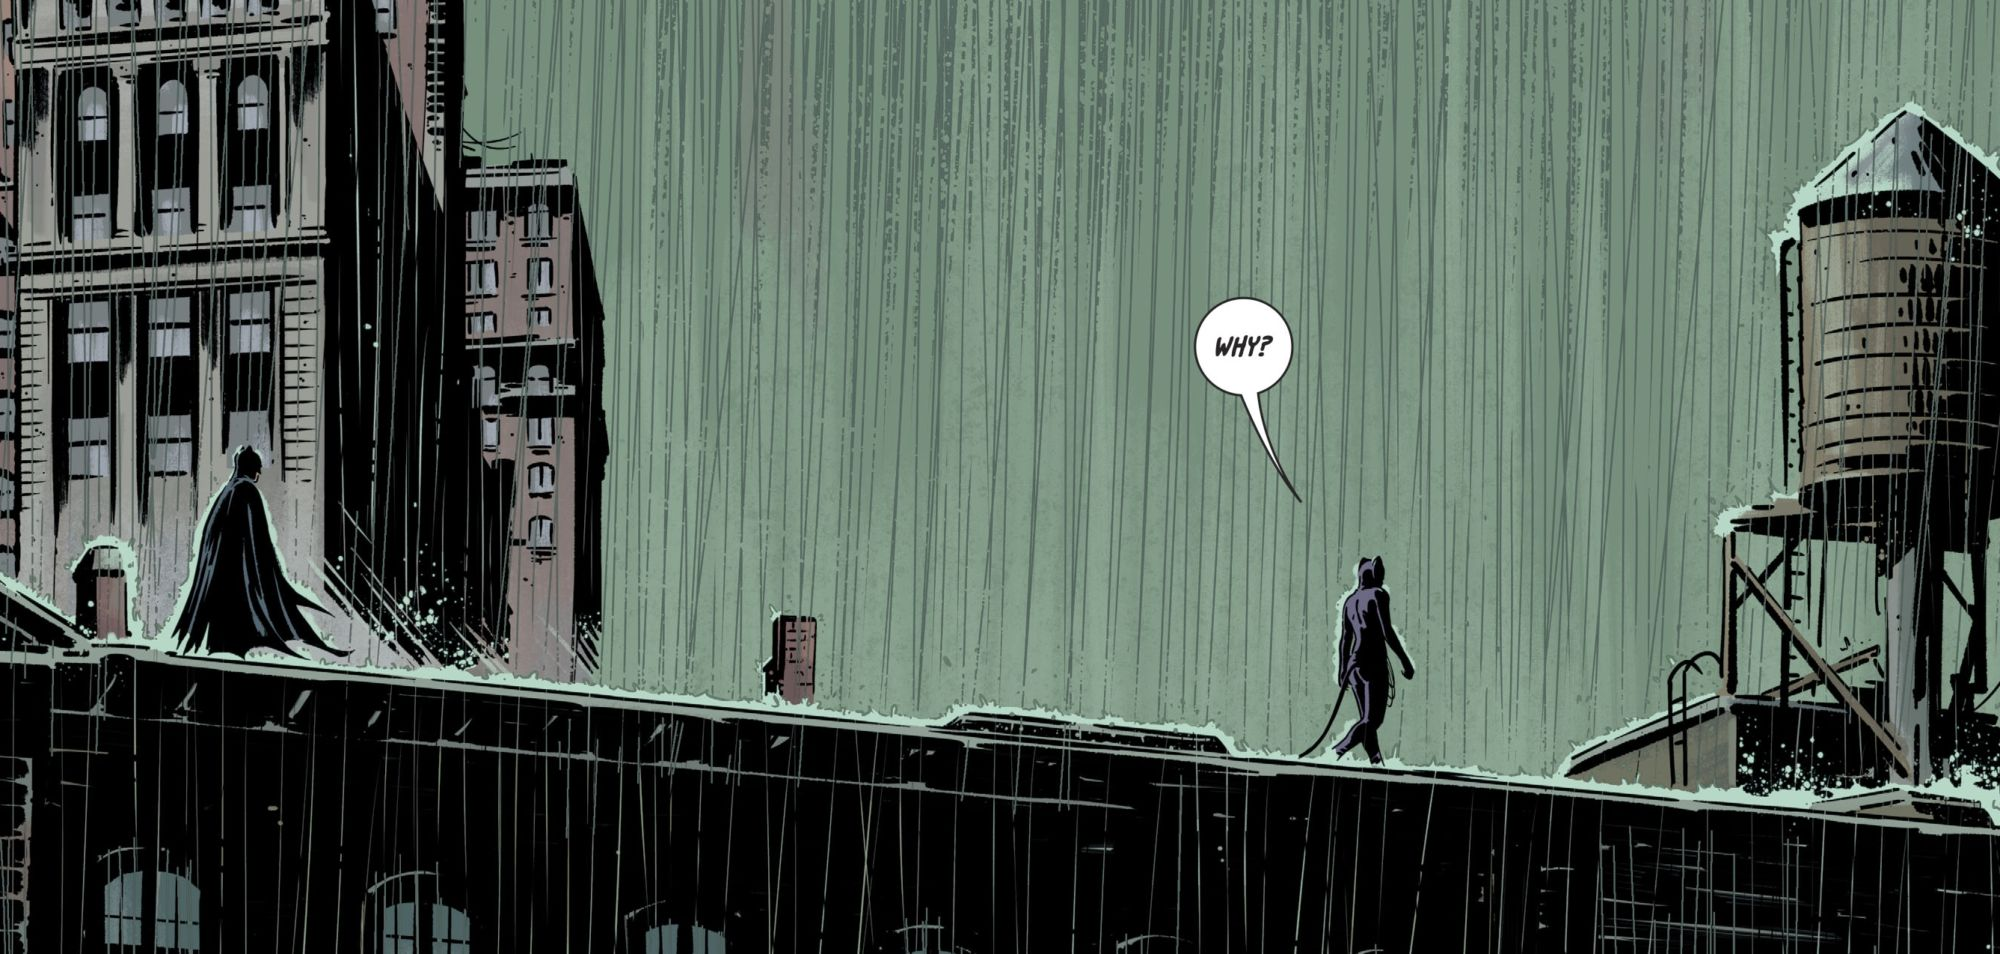 Batman Meets Catwoman Over His Greatest Fear in Batman #69 (Spoilers)